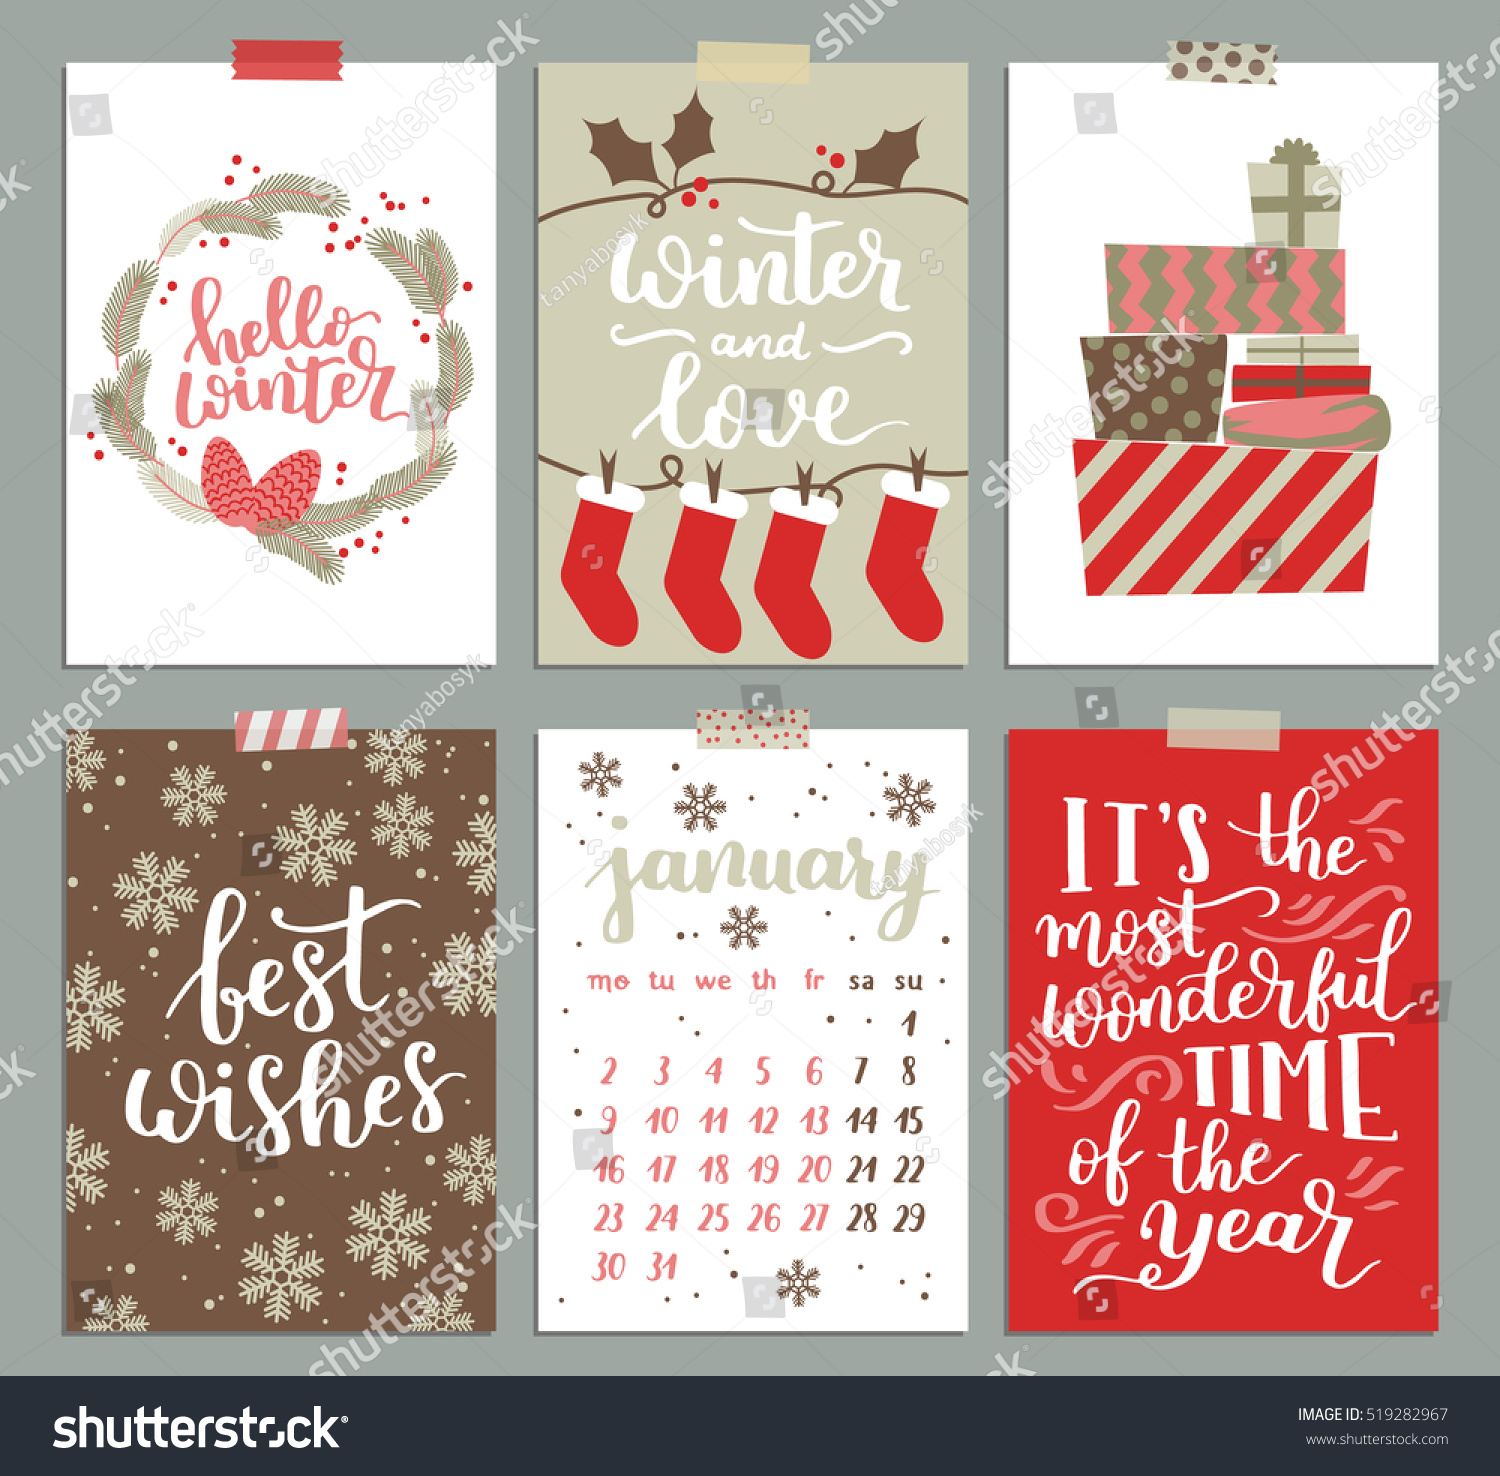 vector collection christmas poster templates christmas stock vector collection of christmas poster templates christmas set of greeting cards bright colors